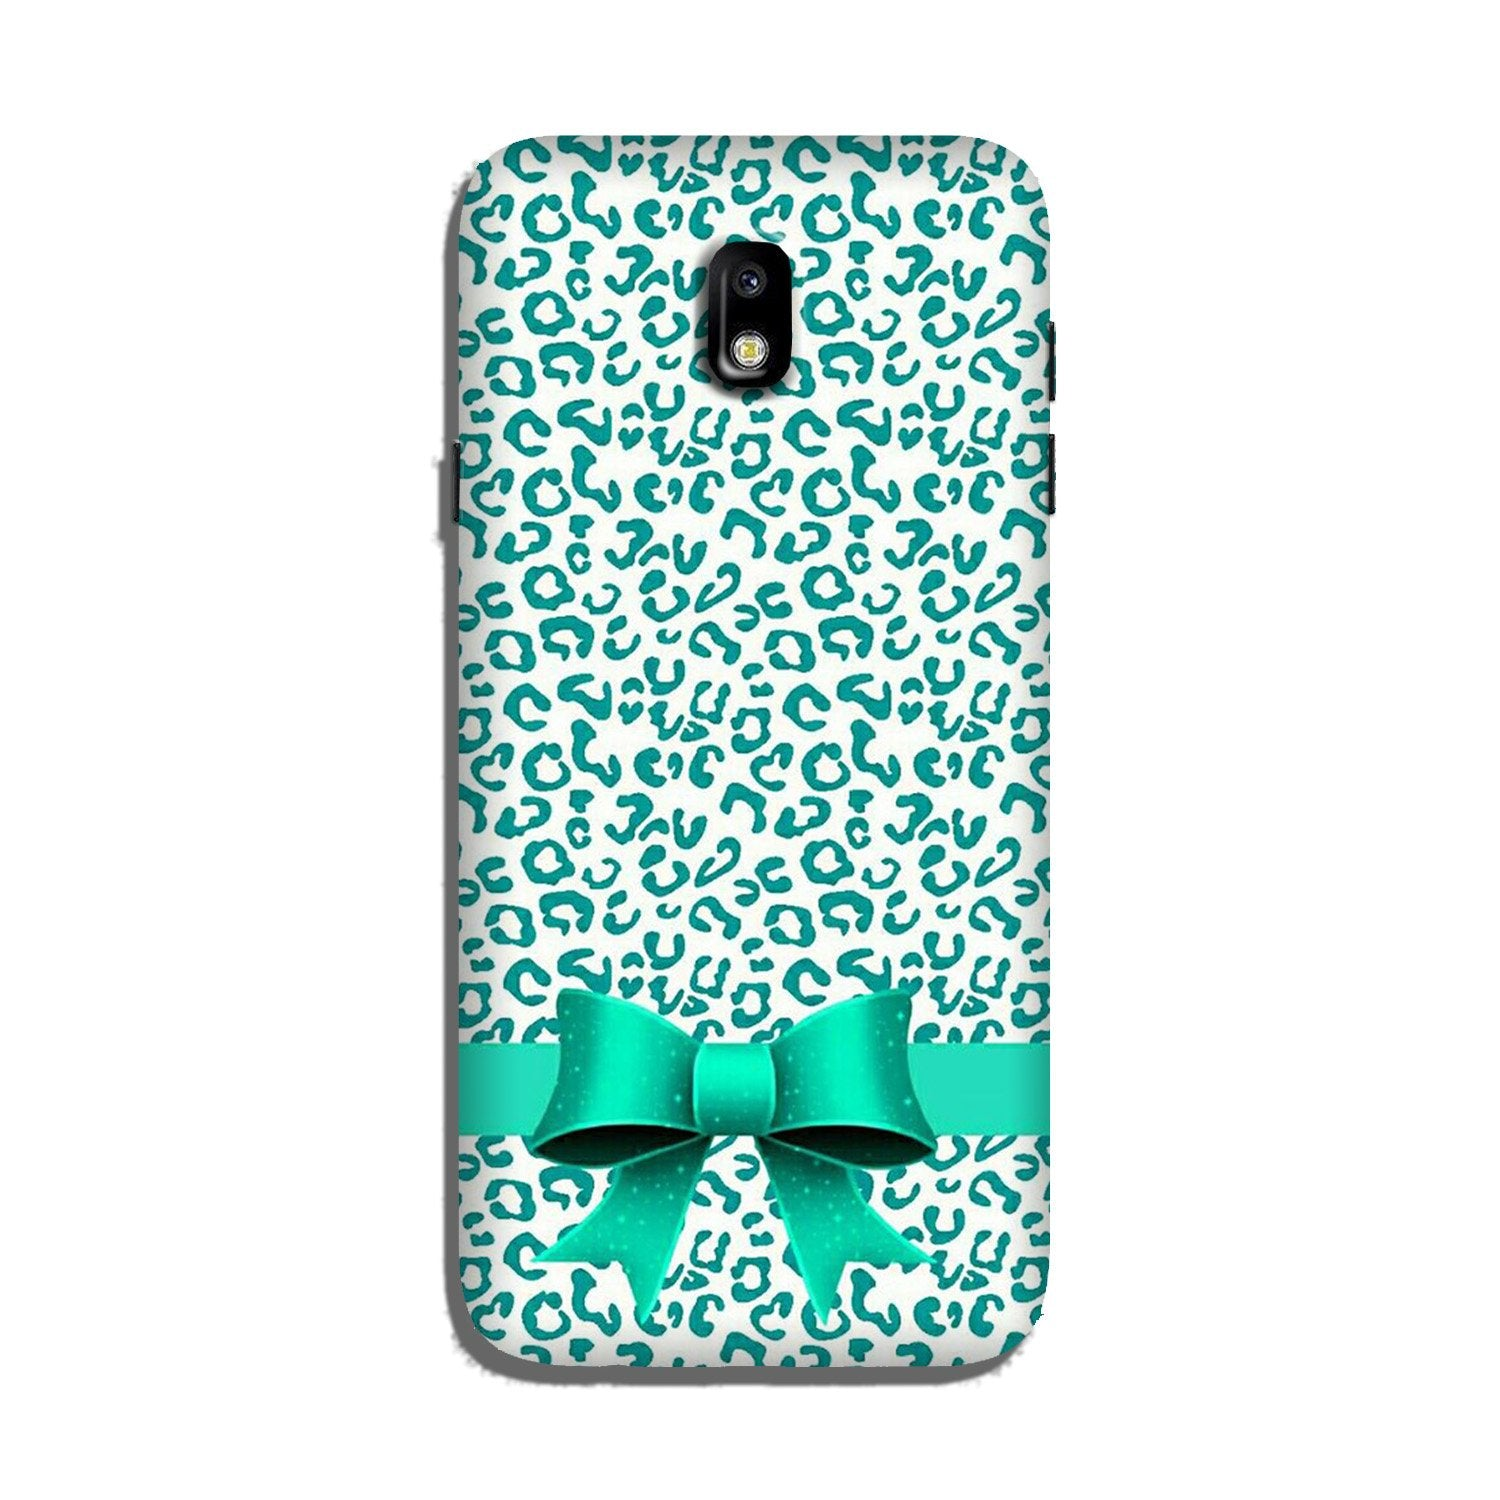 Gift Wrap6 Case for Galaxy J3 Pro